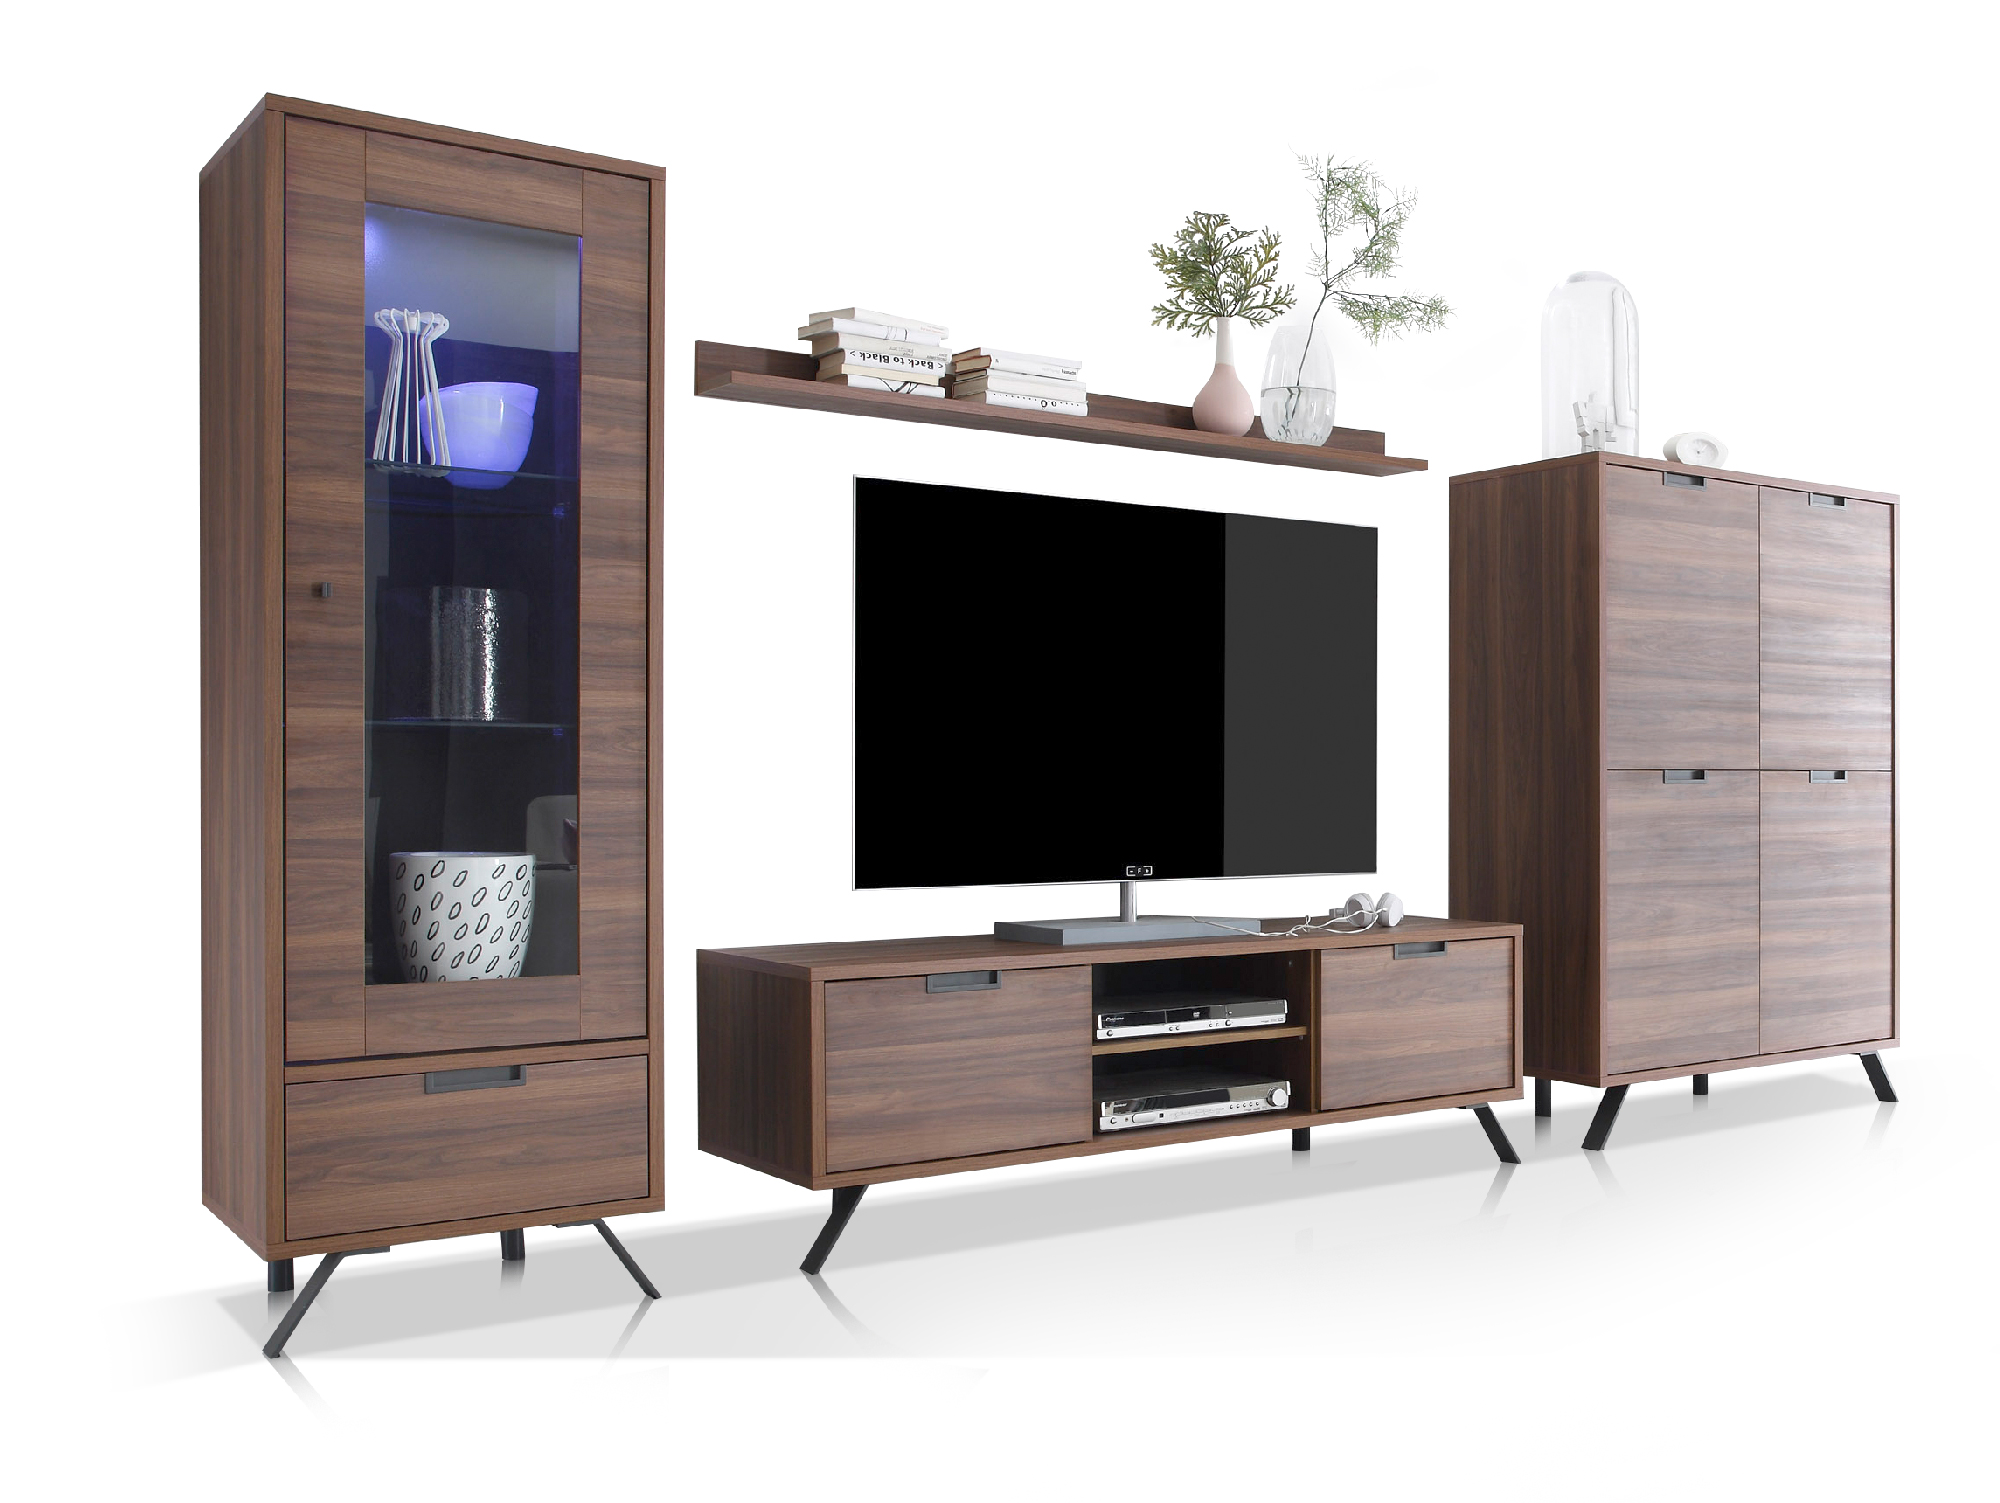 wohnwand nussbaum complex panorama moderne anbauwand. Black Bedroom Furniture Sets. Home Design Ideas